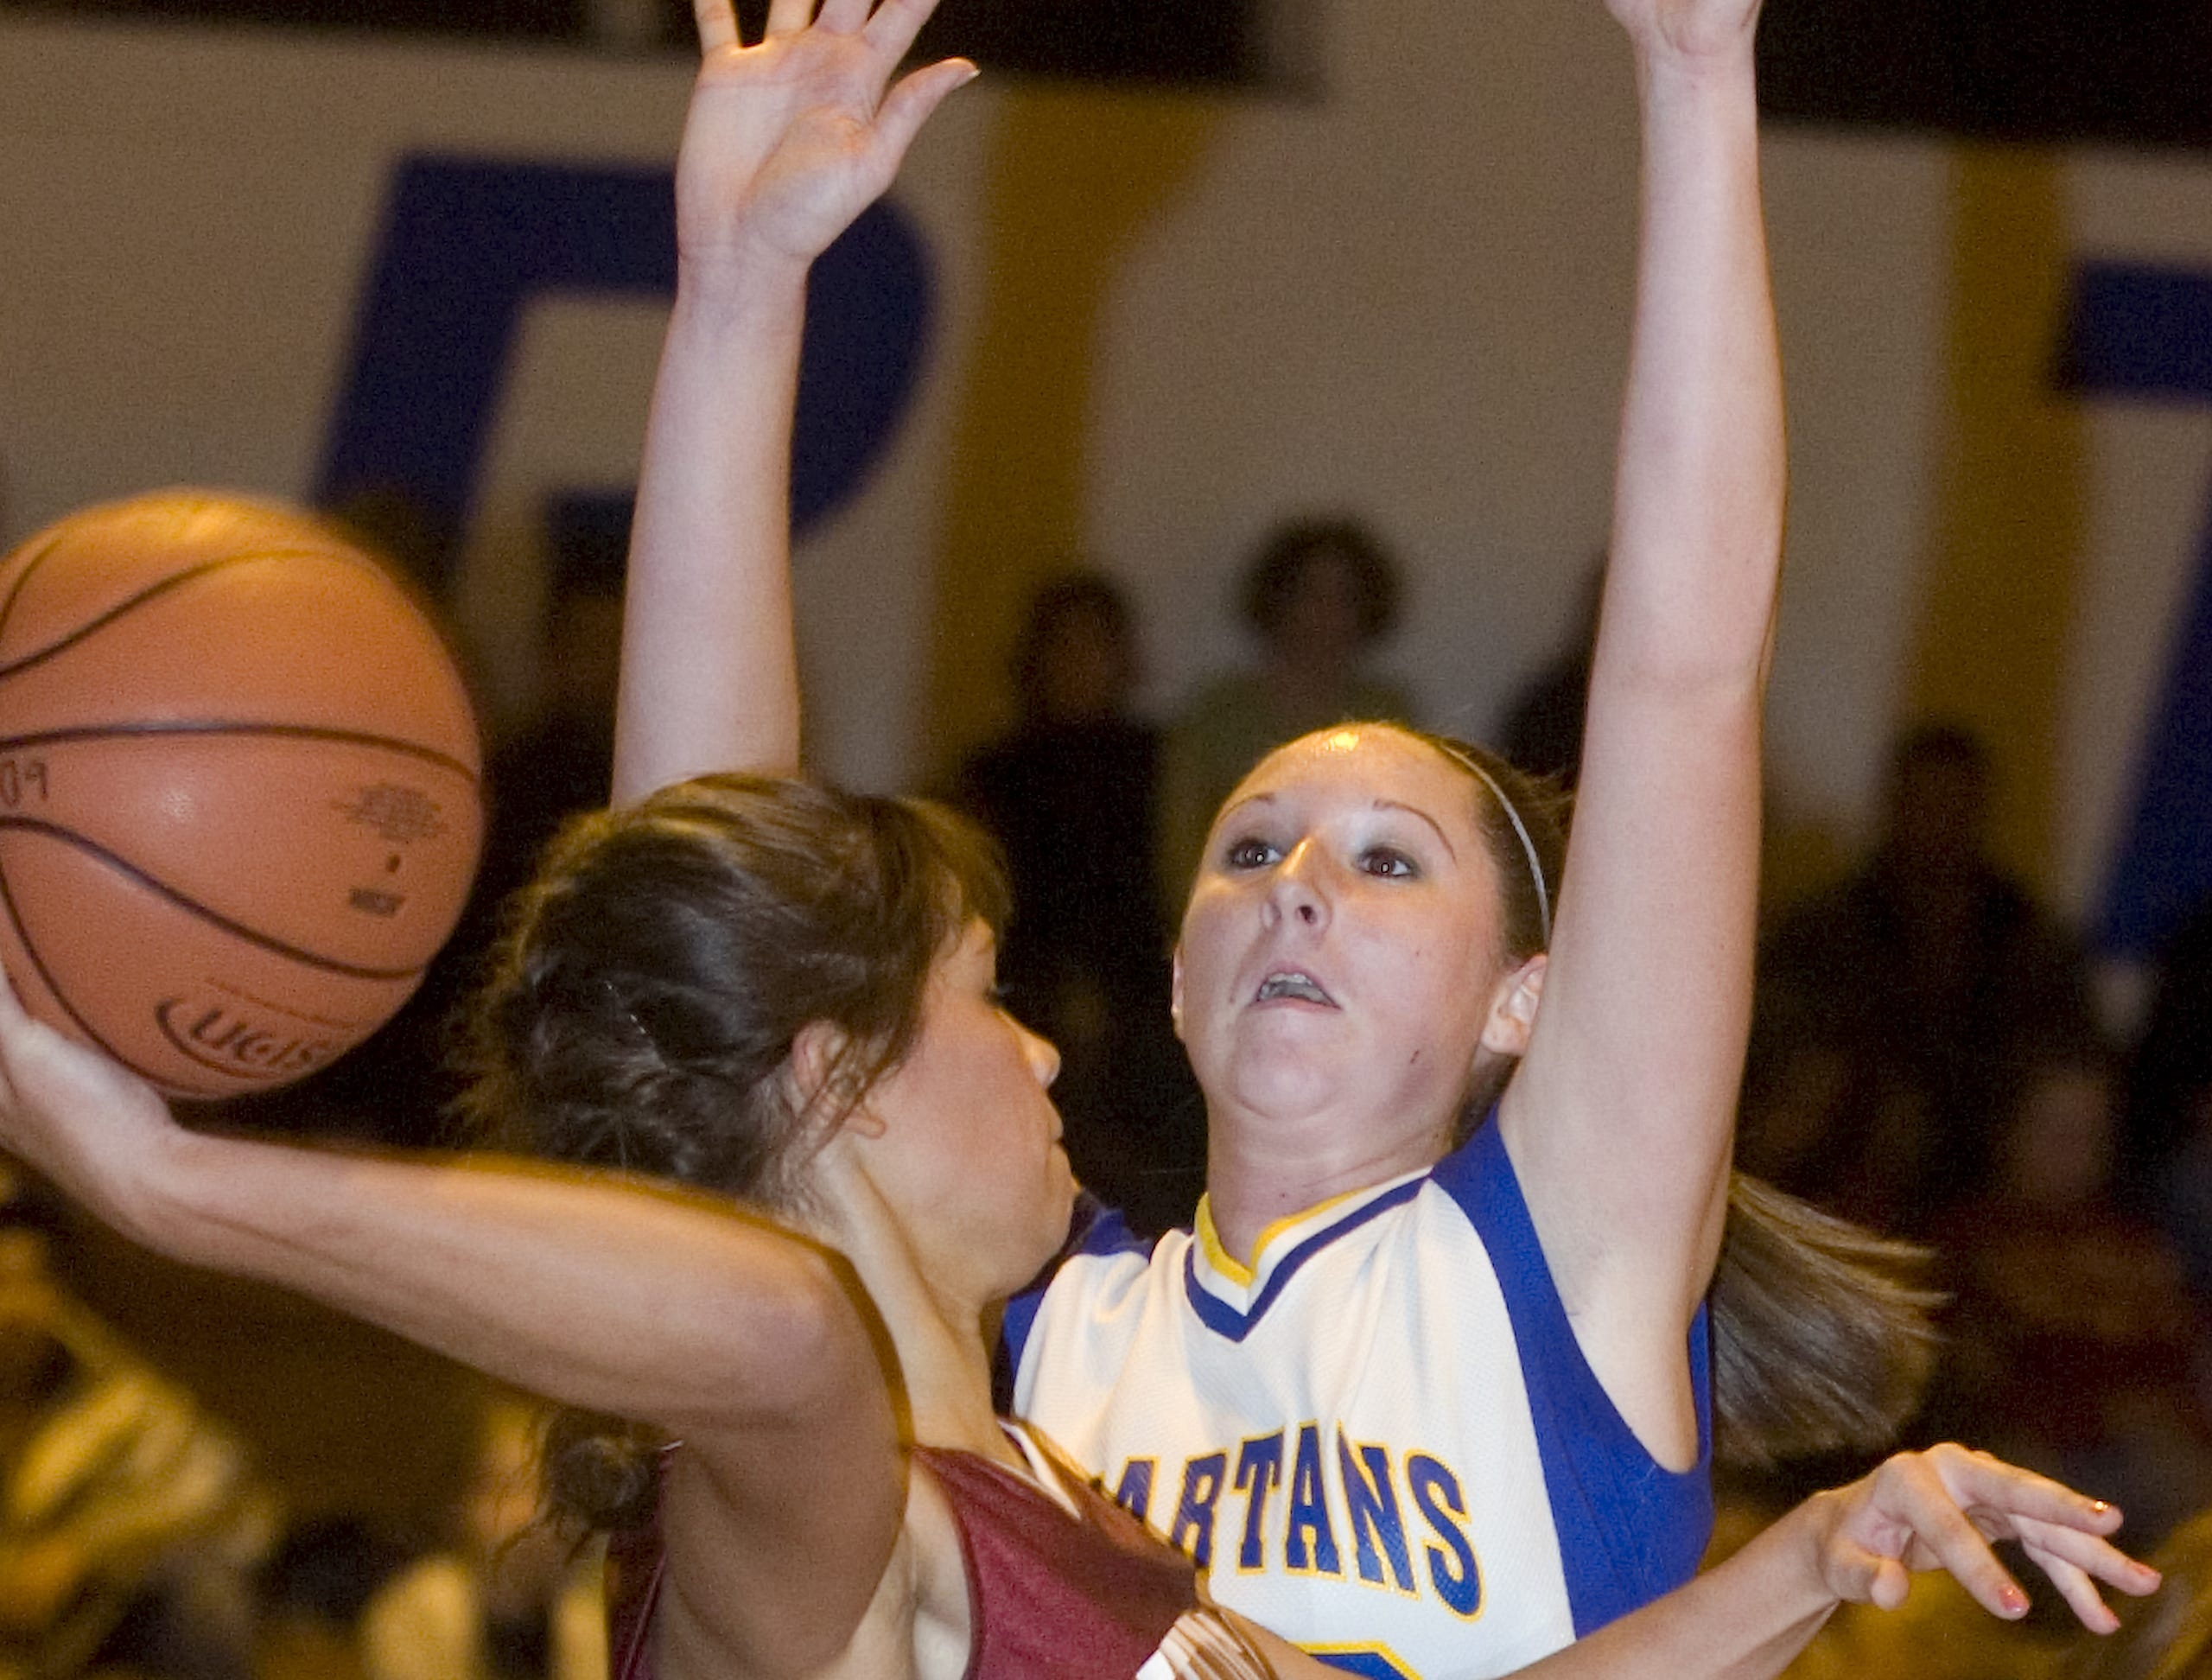 2008: Johnson City's Krystal Newborn, left, gets pressure from Maine-Endwell's Carrie Bushnell in the first quarter of Friday's game at M-E.